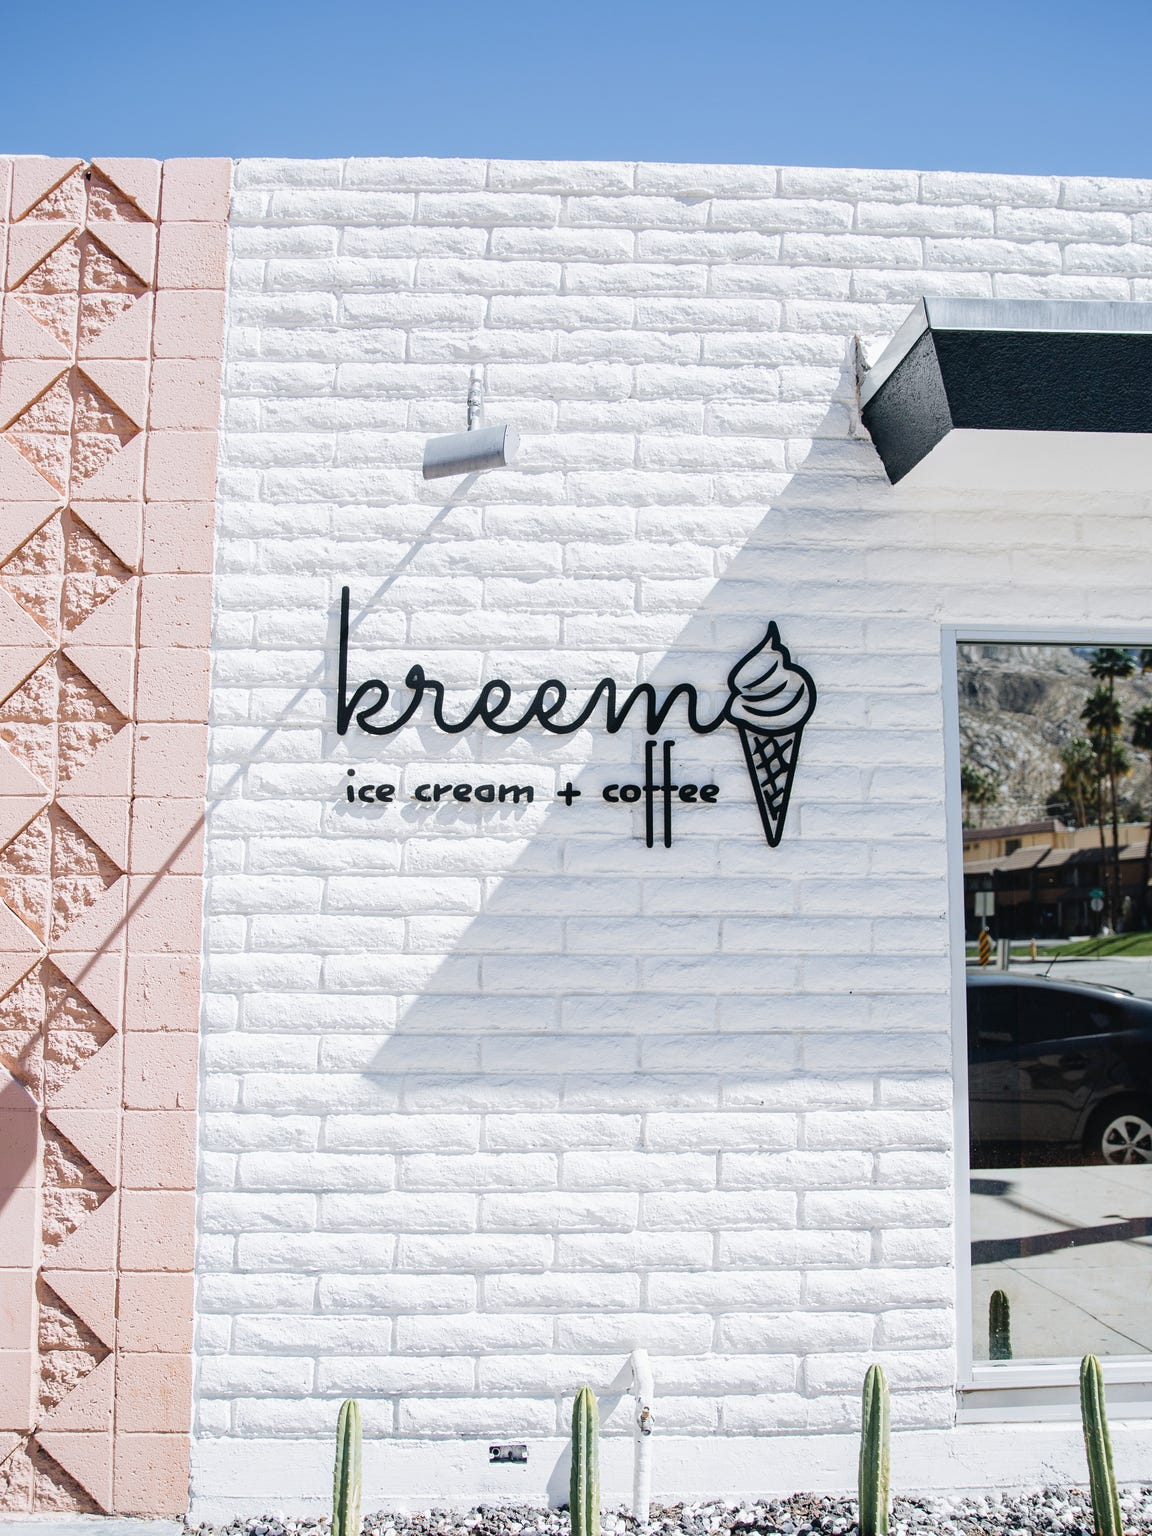 Kreem opens in Palm Springs Friday, and will offer